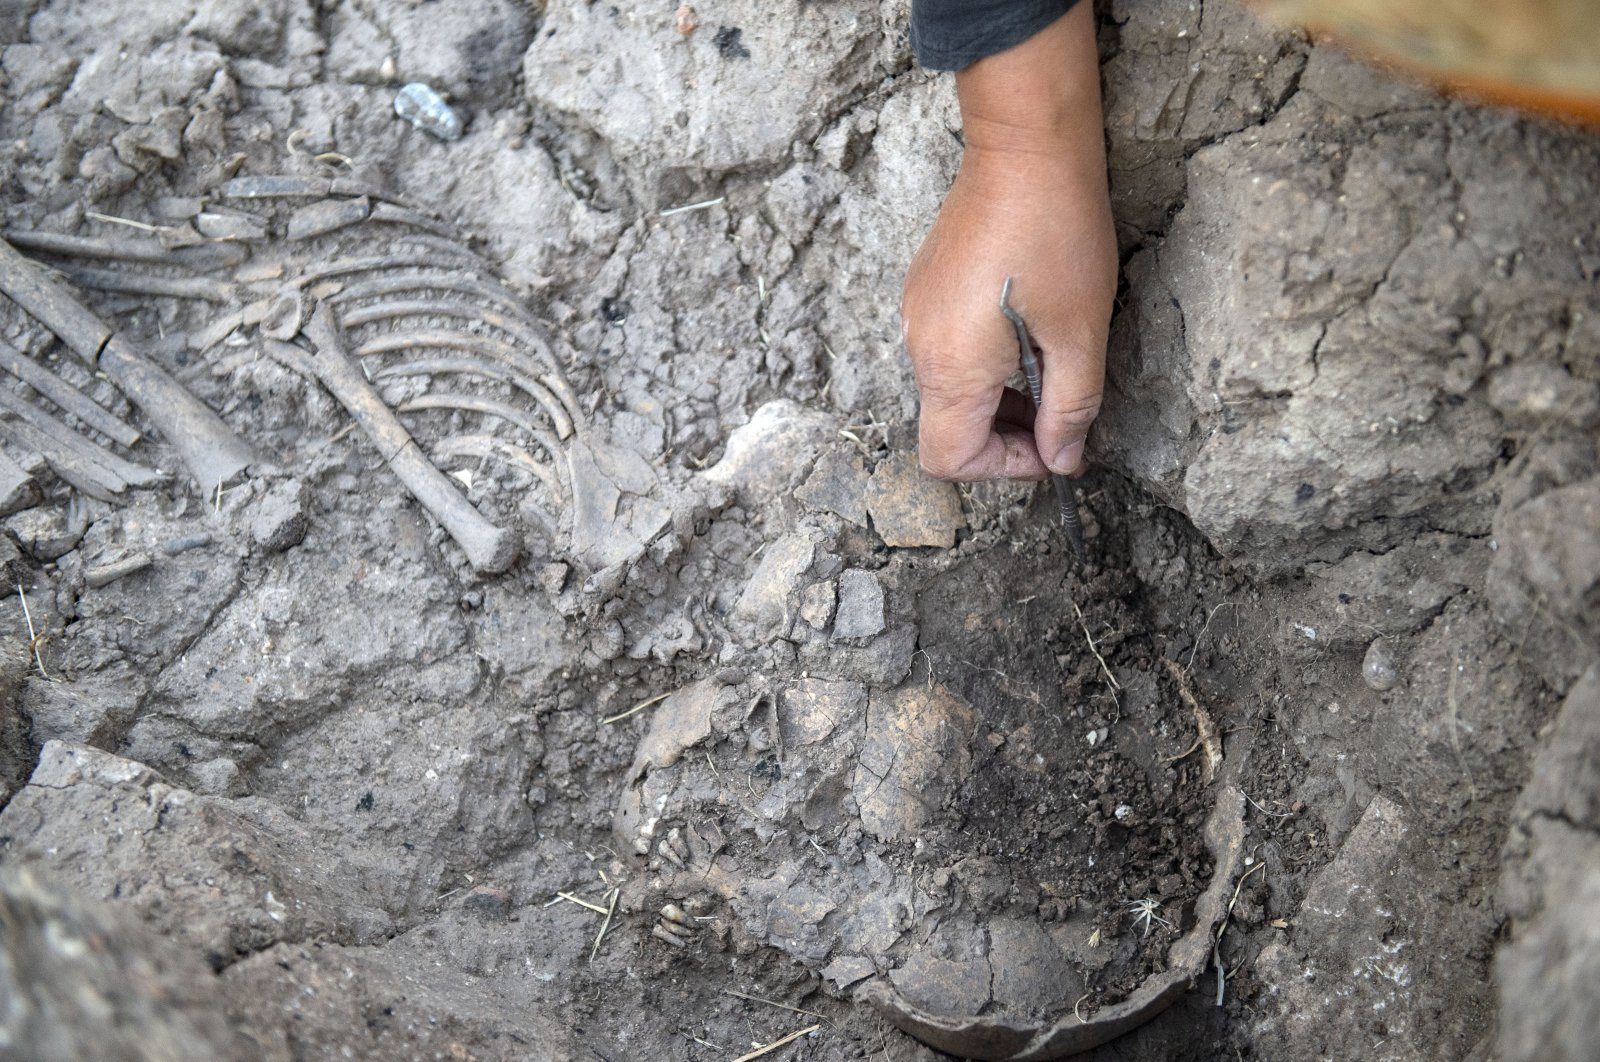 An archaeologist inspects the remains of a skeleton during excavations at the Tozkoparan Mound site in Tunceli, Turkey, Aug. 11, 2021. (AA Photo)